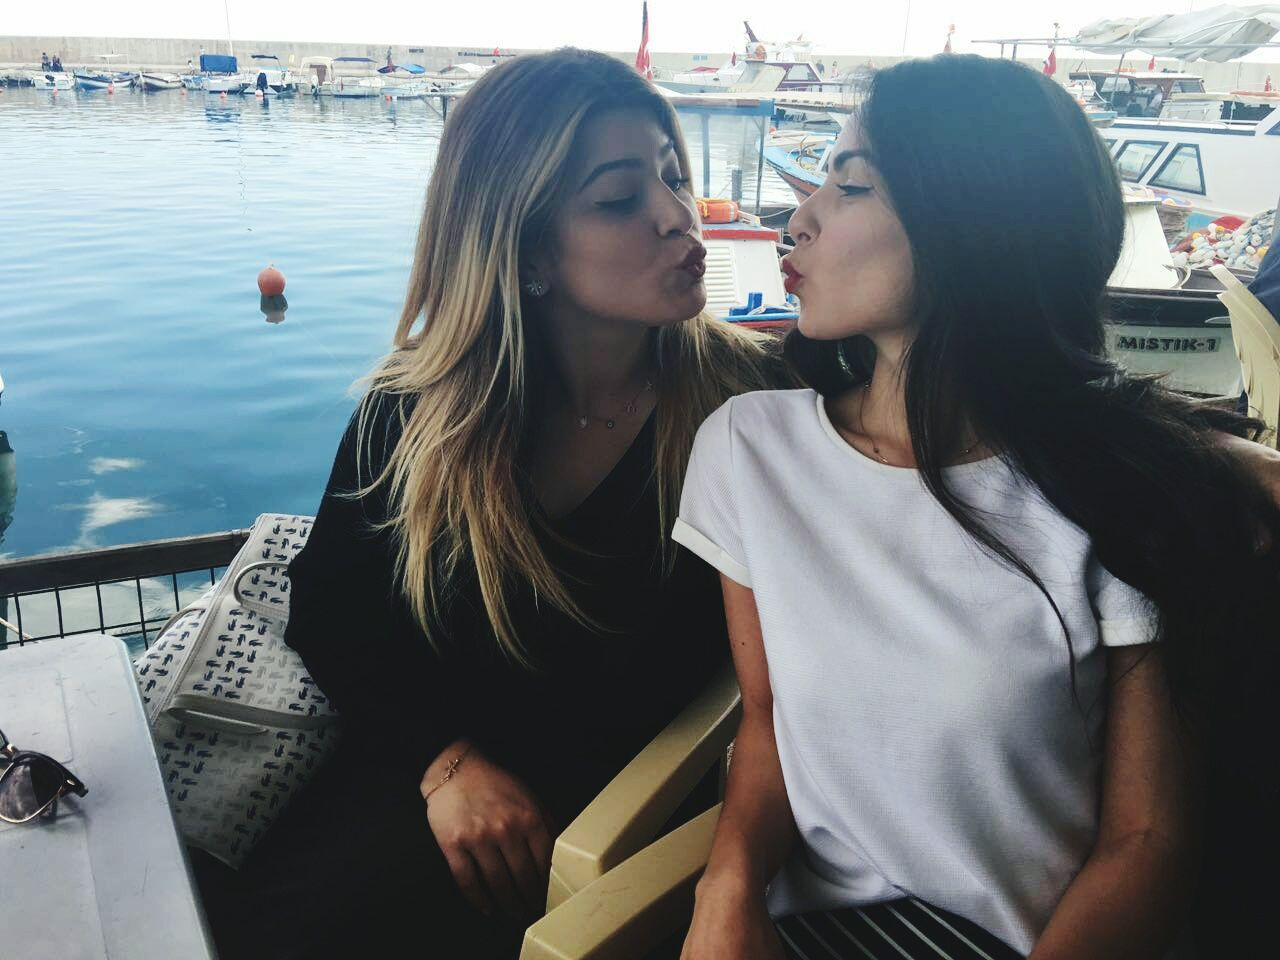 two people, togetherness, young women, young adult, real people, leisure activity, love, casual clothing, bonding, holding, day, lifestyles, sitting, women, friendship, nautical vessel, outdoors, water